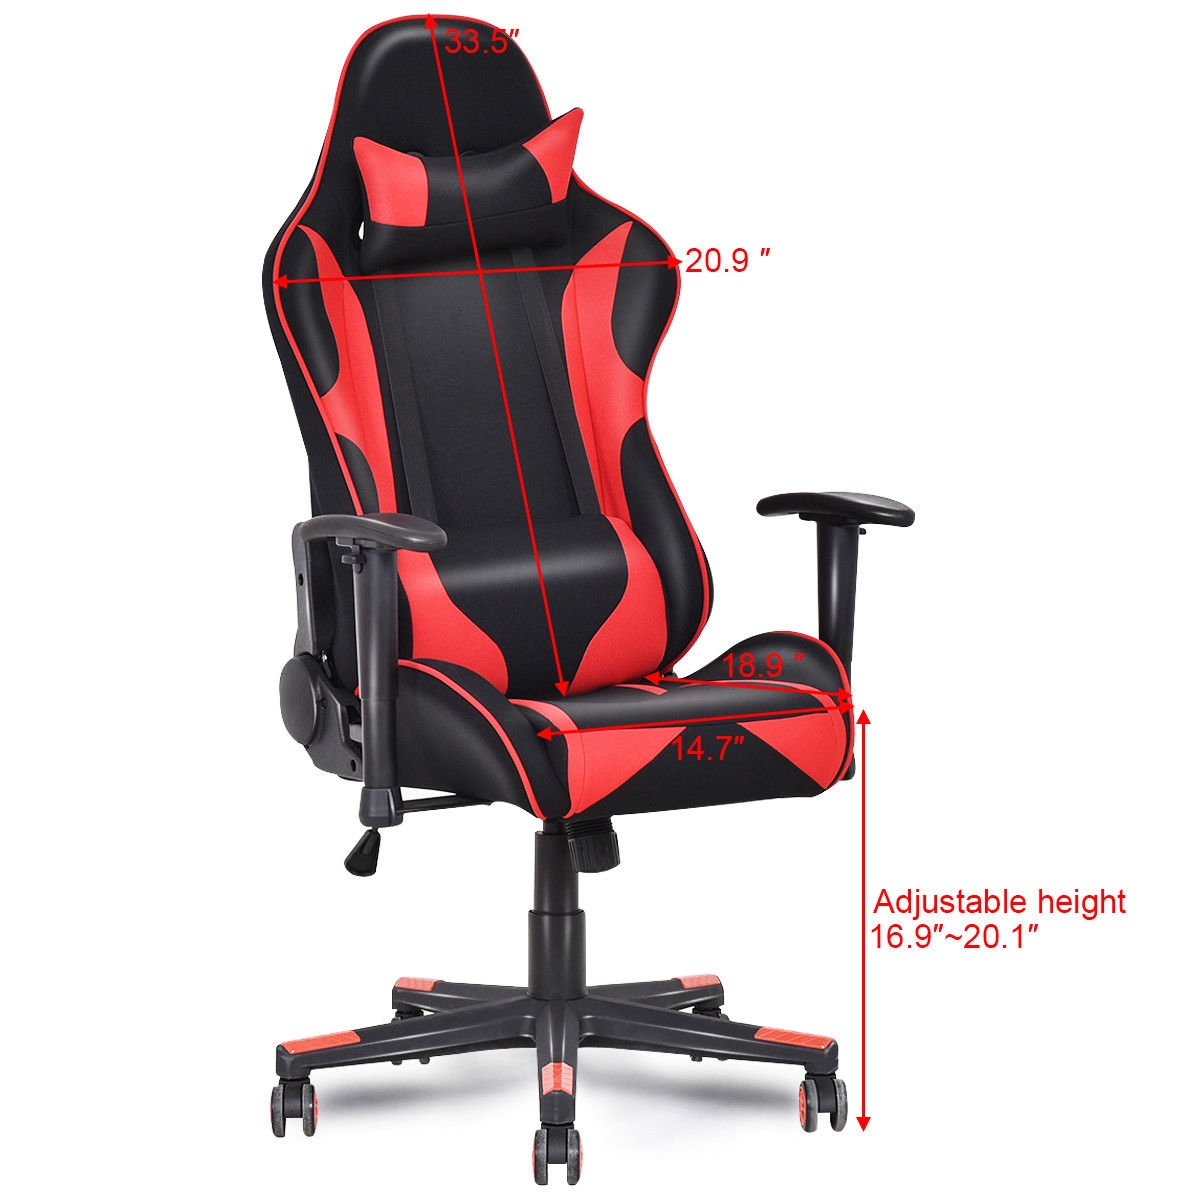 Recliner Gaming Chair Golf Chairs Portable Giantex Racing Style High Back Modern Mesh Swivel Computer Office Ergonomic Furniture Hw55608 In From